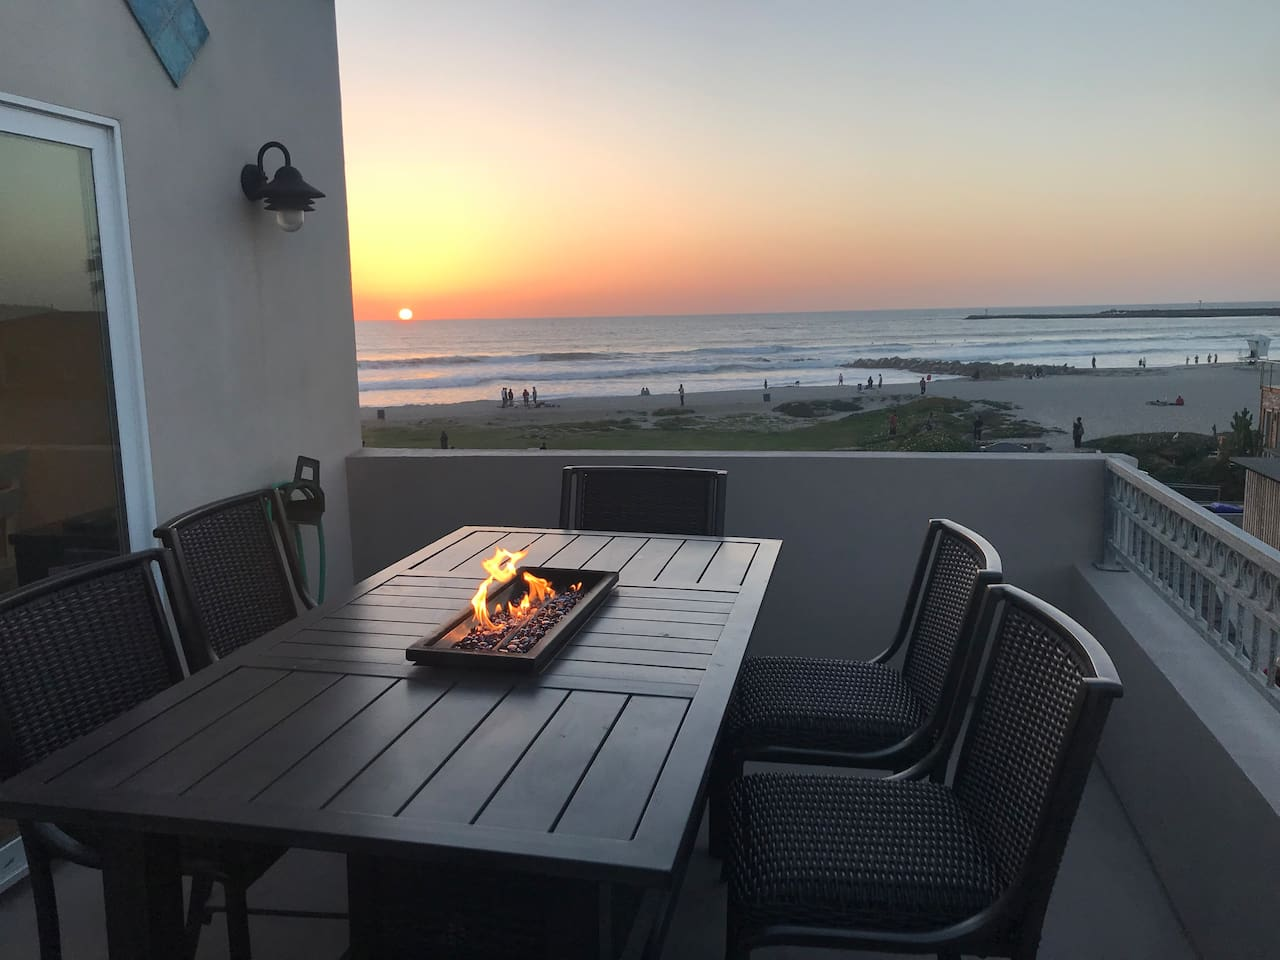 Watch the sunset from your own private deck with a fire pit.